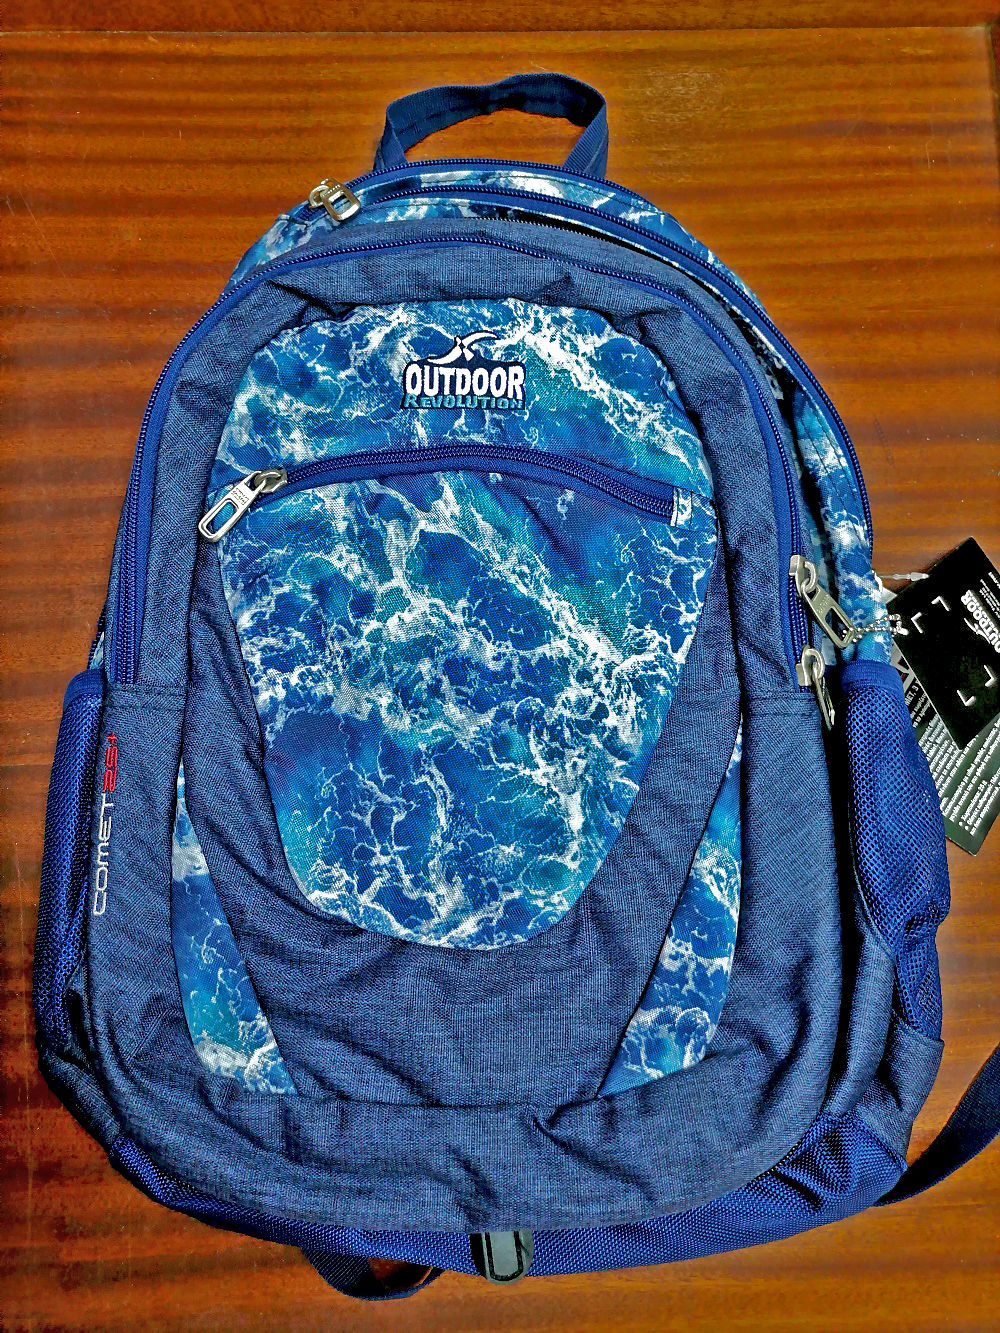 backpack outdoor για αγόρι και κορίτσι unisex